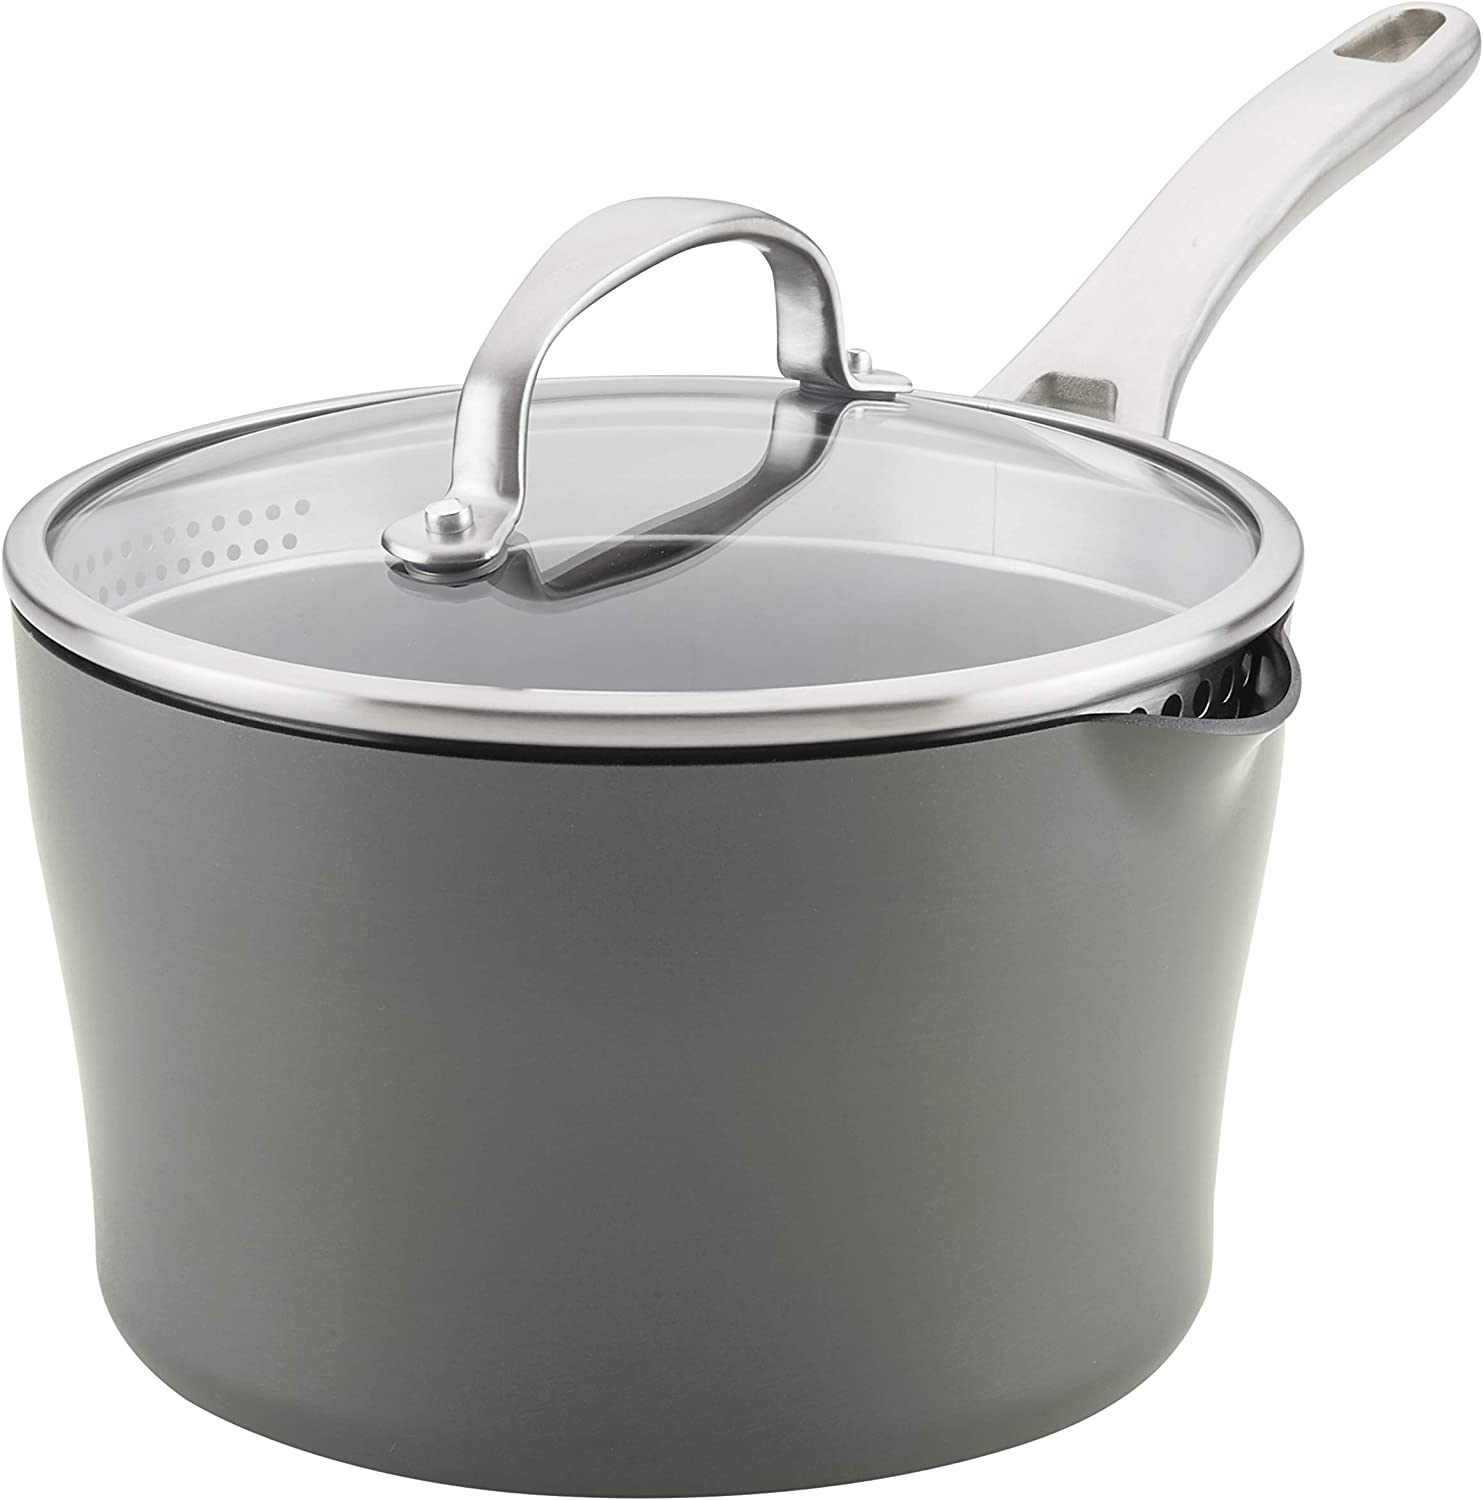 Anolon 81170 Allure Hard Anodized Nonstick Sauce Pan/Saucepan with Straining and Lid, 3.5 Quart, Gray